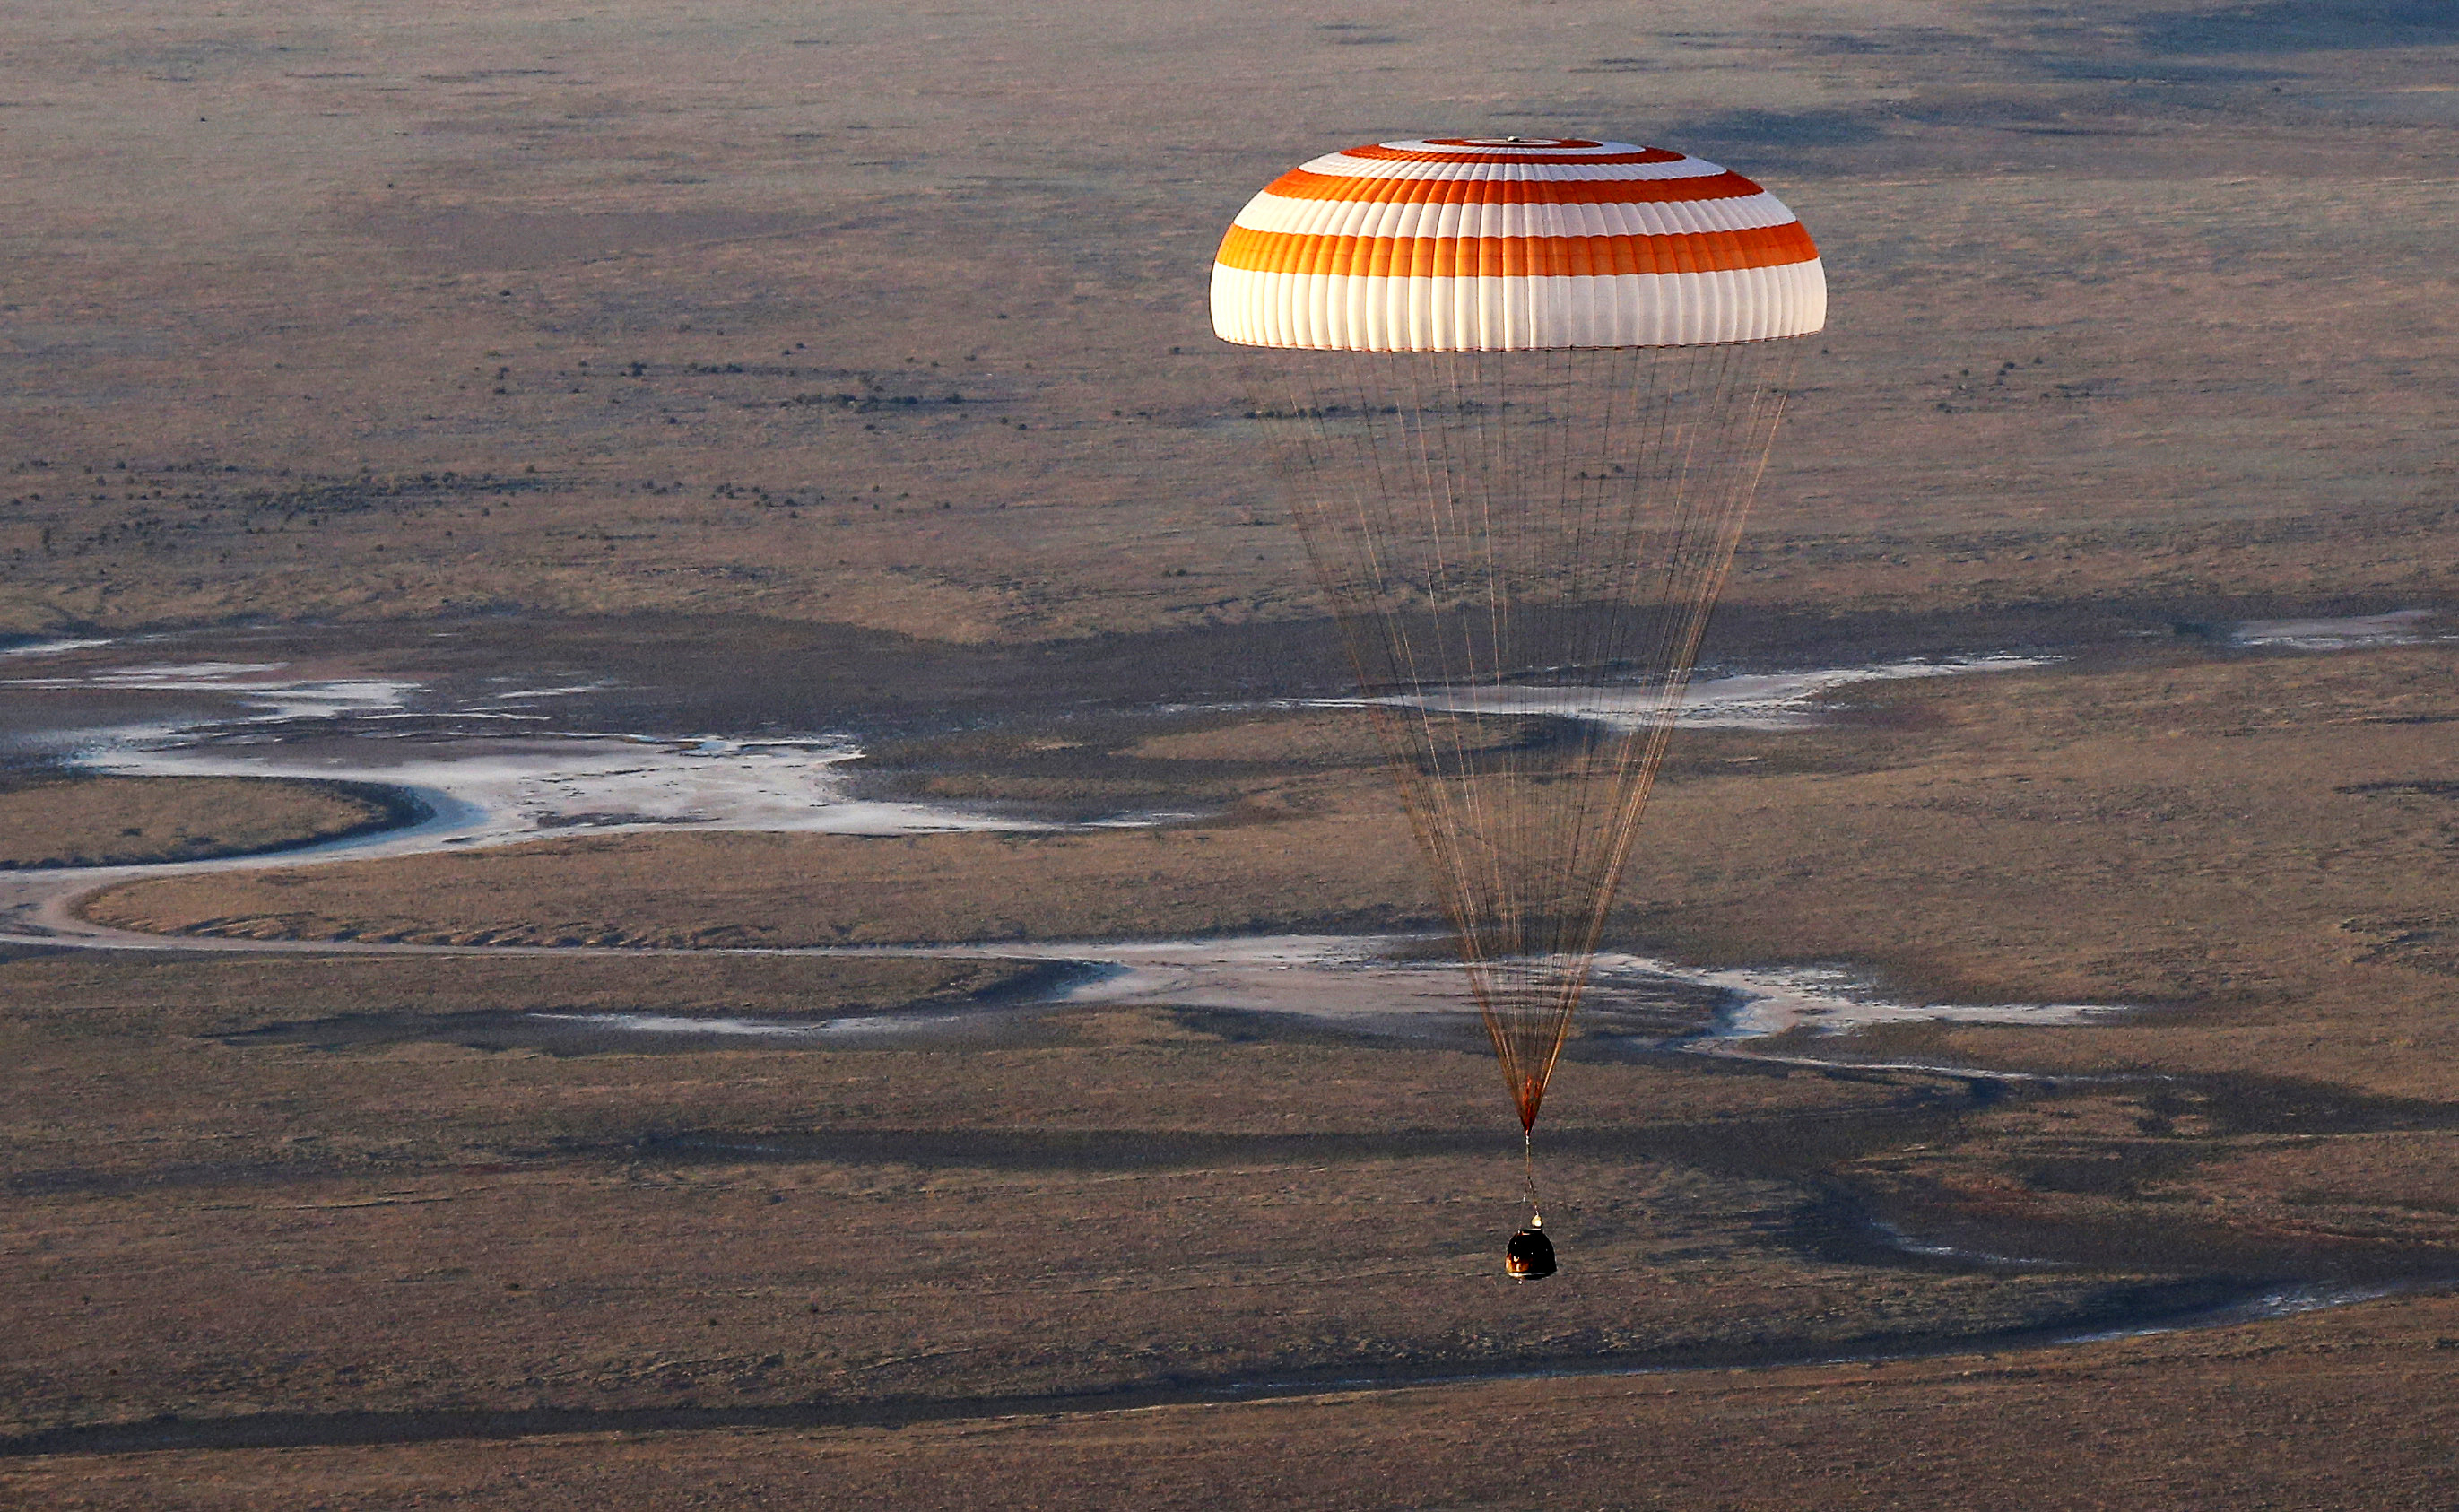 The Soyuz TMA-20M spacecraft capsule carrying International Space Station (ISS) crew descends beneath a parachute near the town of Zhezkazgan (Dzhezkazgan), Kazakhstan